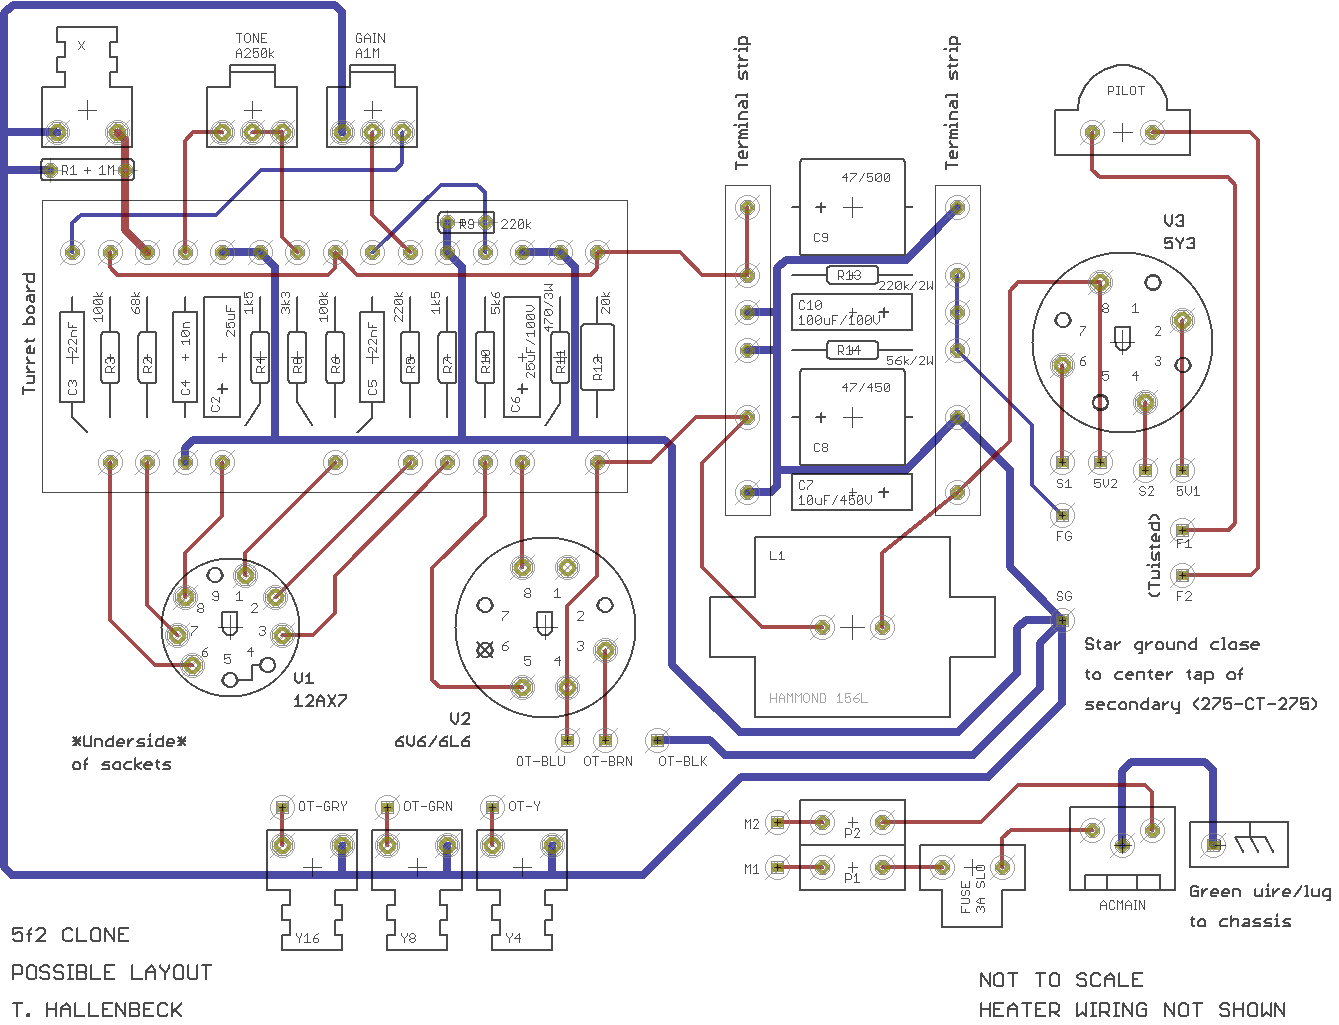 5f2 a schematic electrical drawing wiring diagram d i y 5f2 champ princeton clone 2013 t hallenbeck rh thallenbeck com schematic circuit diagram schematic diagram cheapraybanclubmaster Choice Image